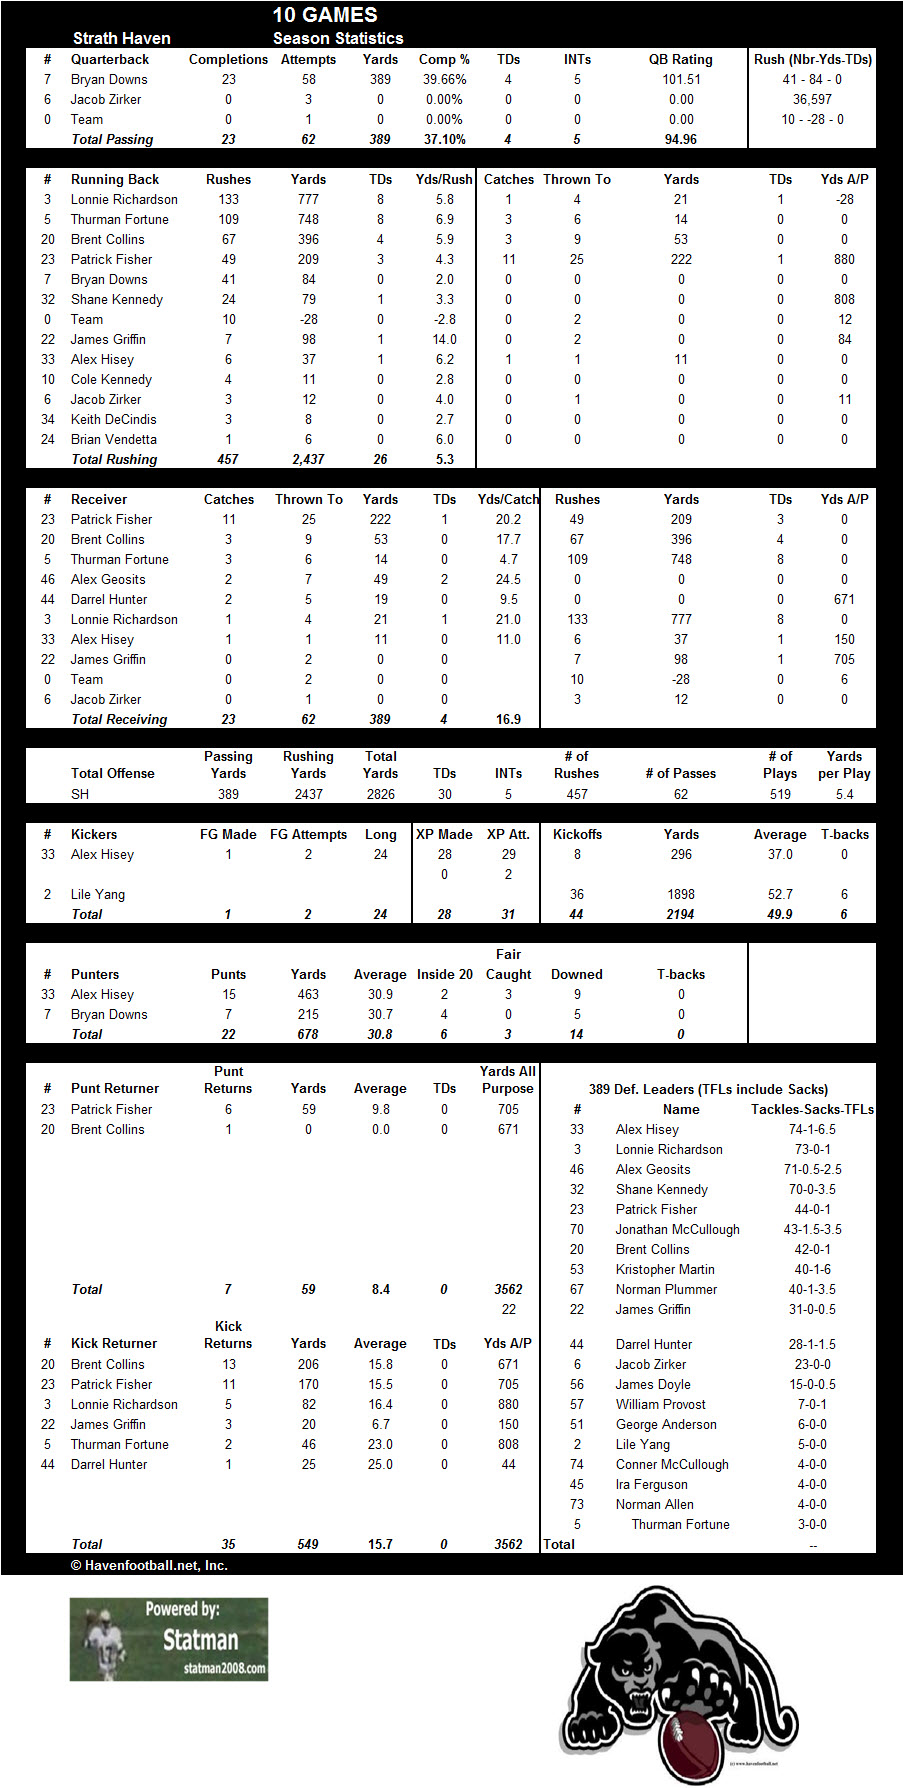 2009 Offensive Stats